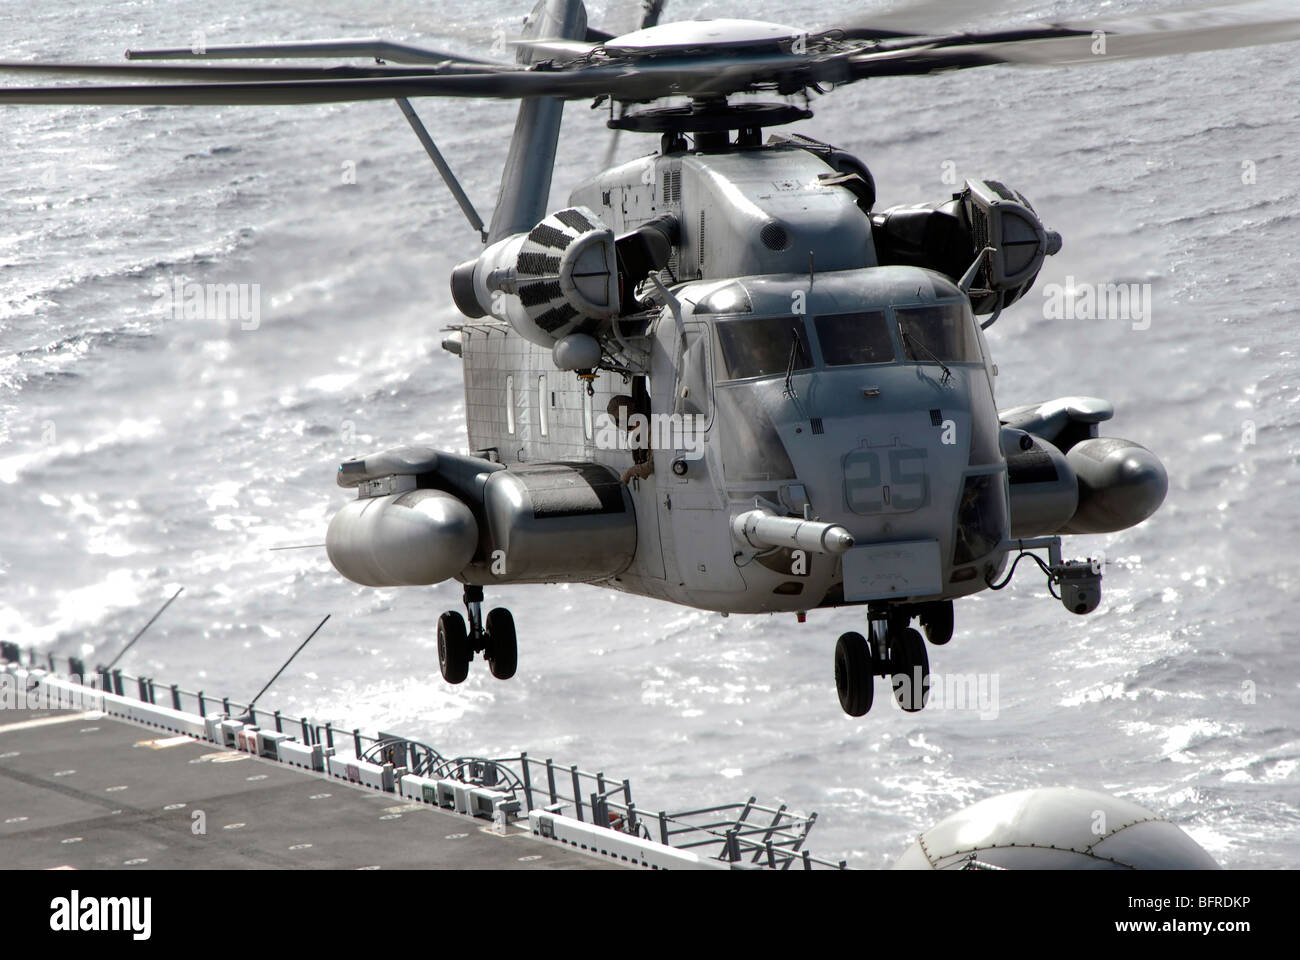 A CH-53E Super Stallion helicopter takes off from USS Makin Island. - Stock Image